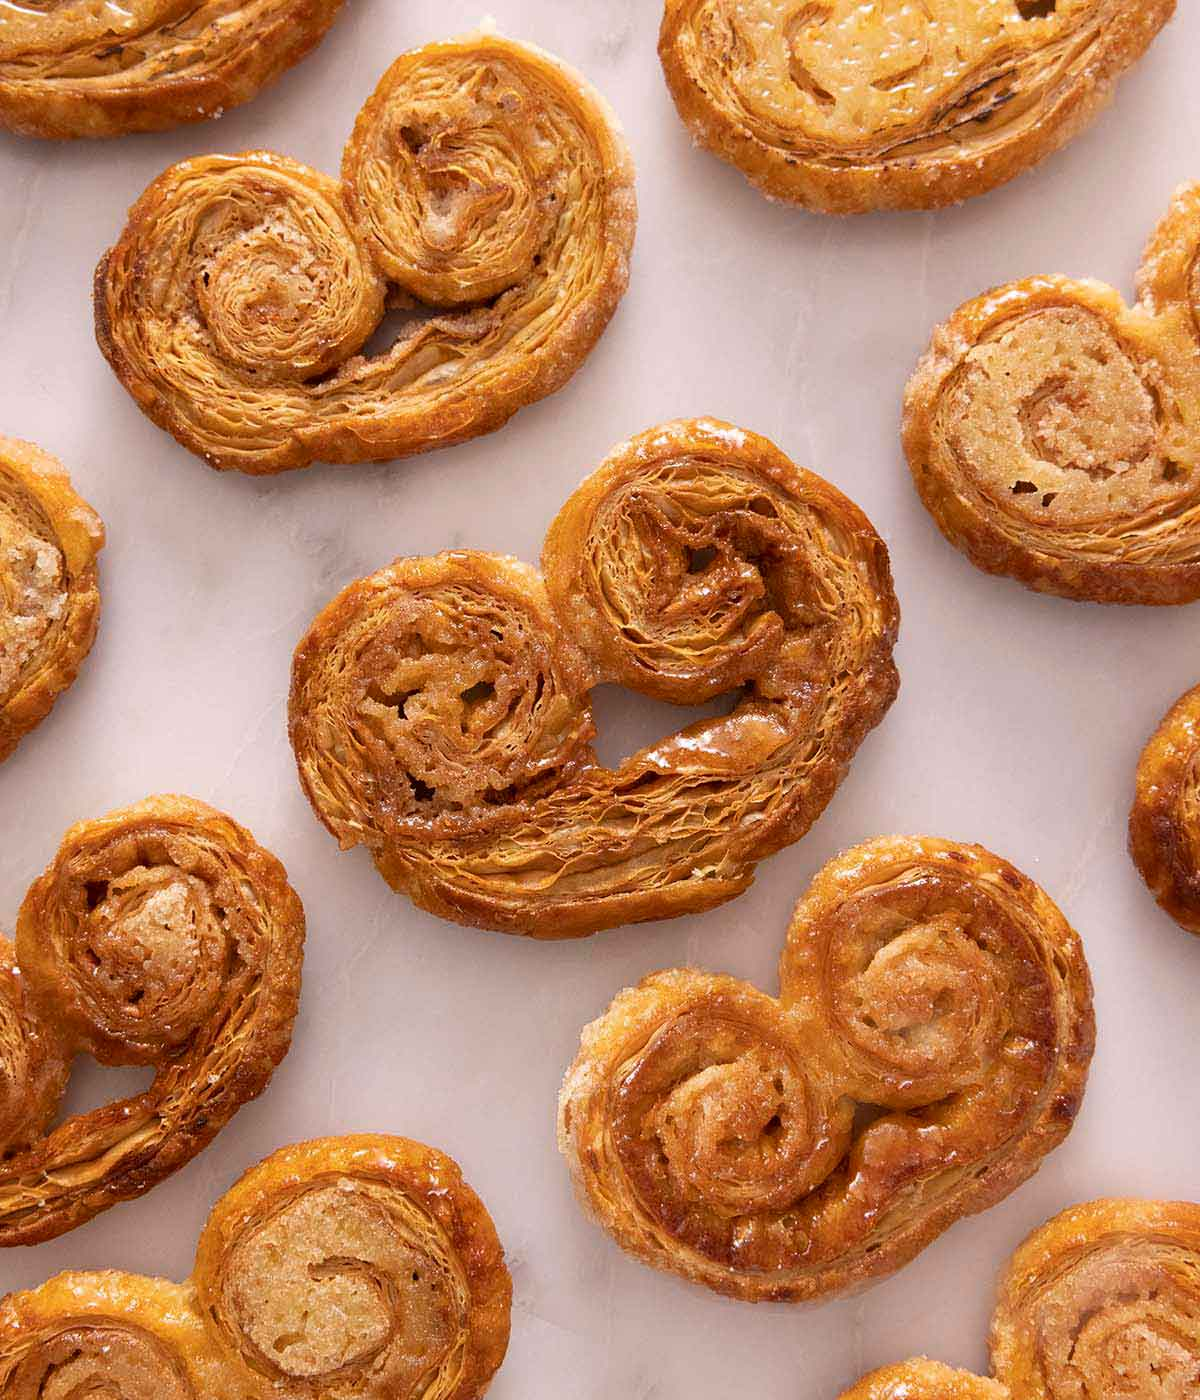 Multiple palmiers laid in a single layer on a marble surface.